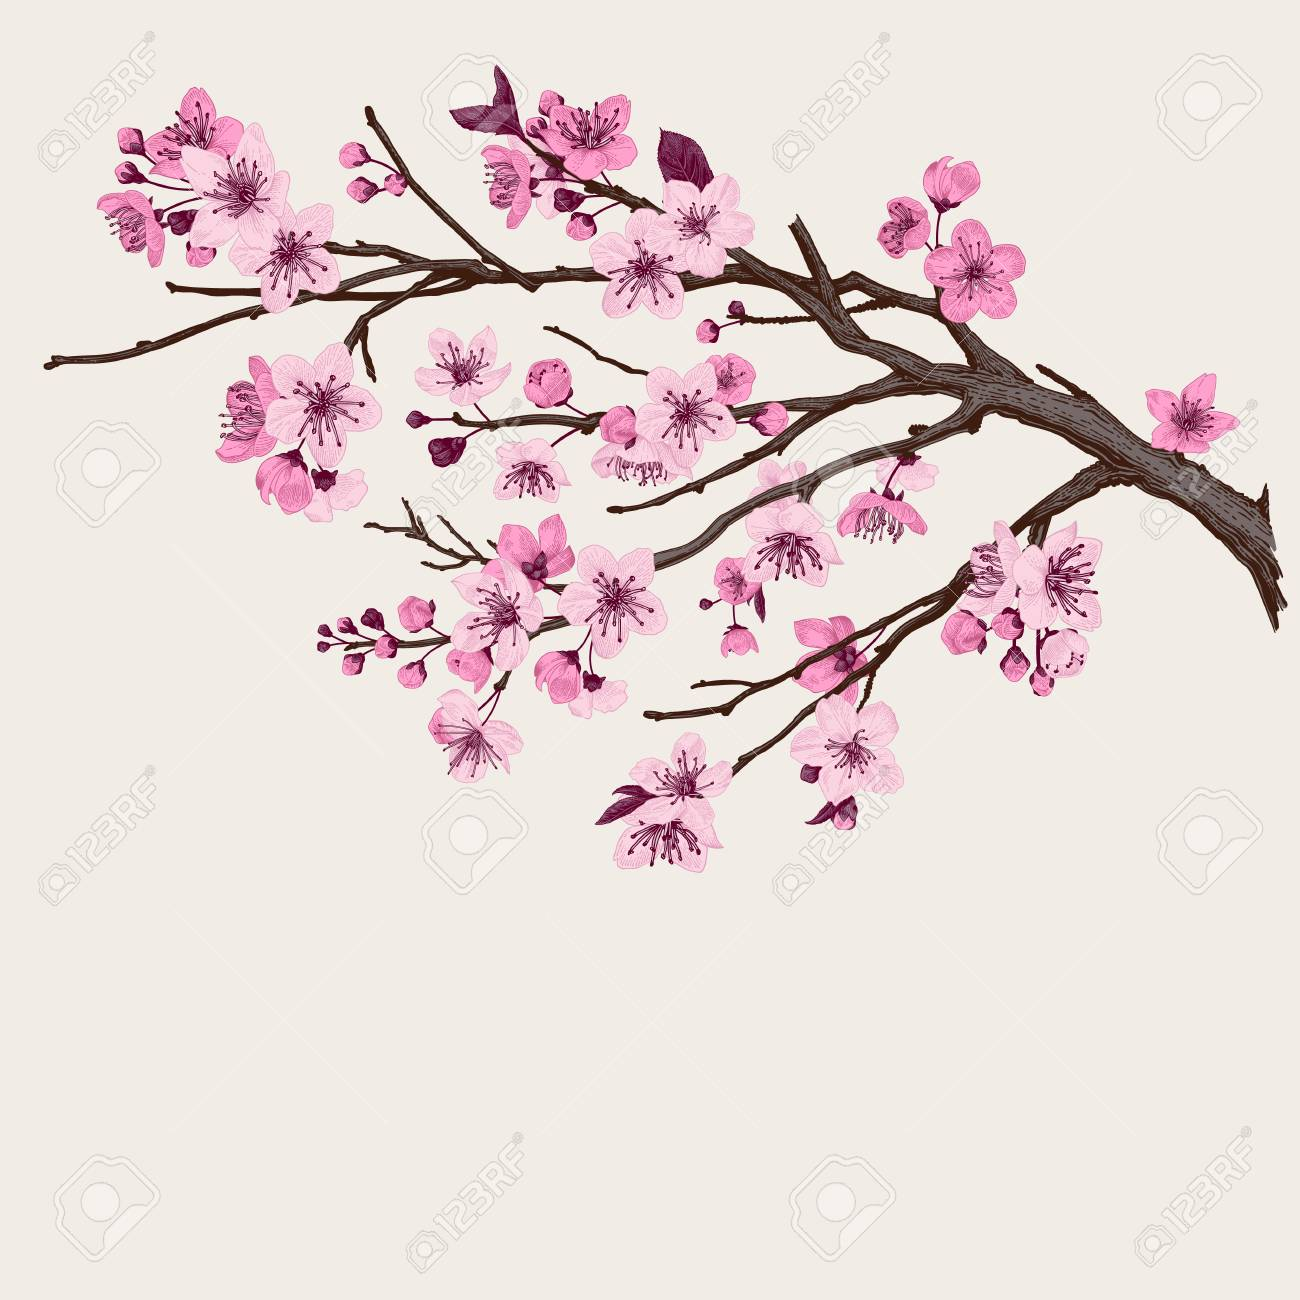 Sakura Pink Cherry Blossom Branch Vector Botanical Illustration Royalty Free Cliparts Vectors And Stock Illustration Image 93216381